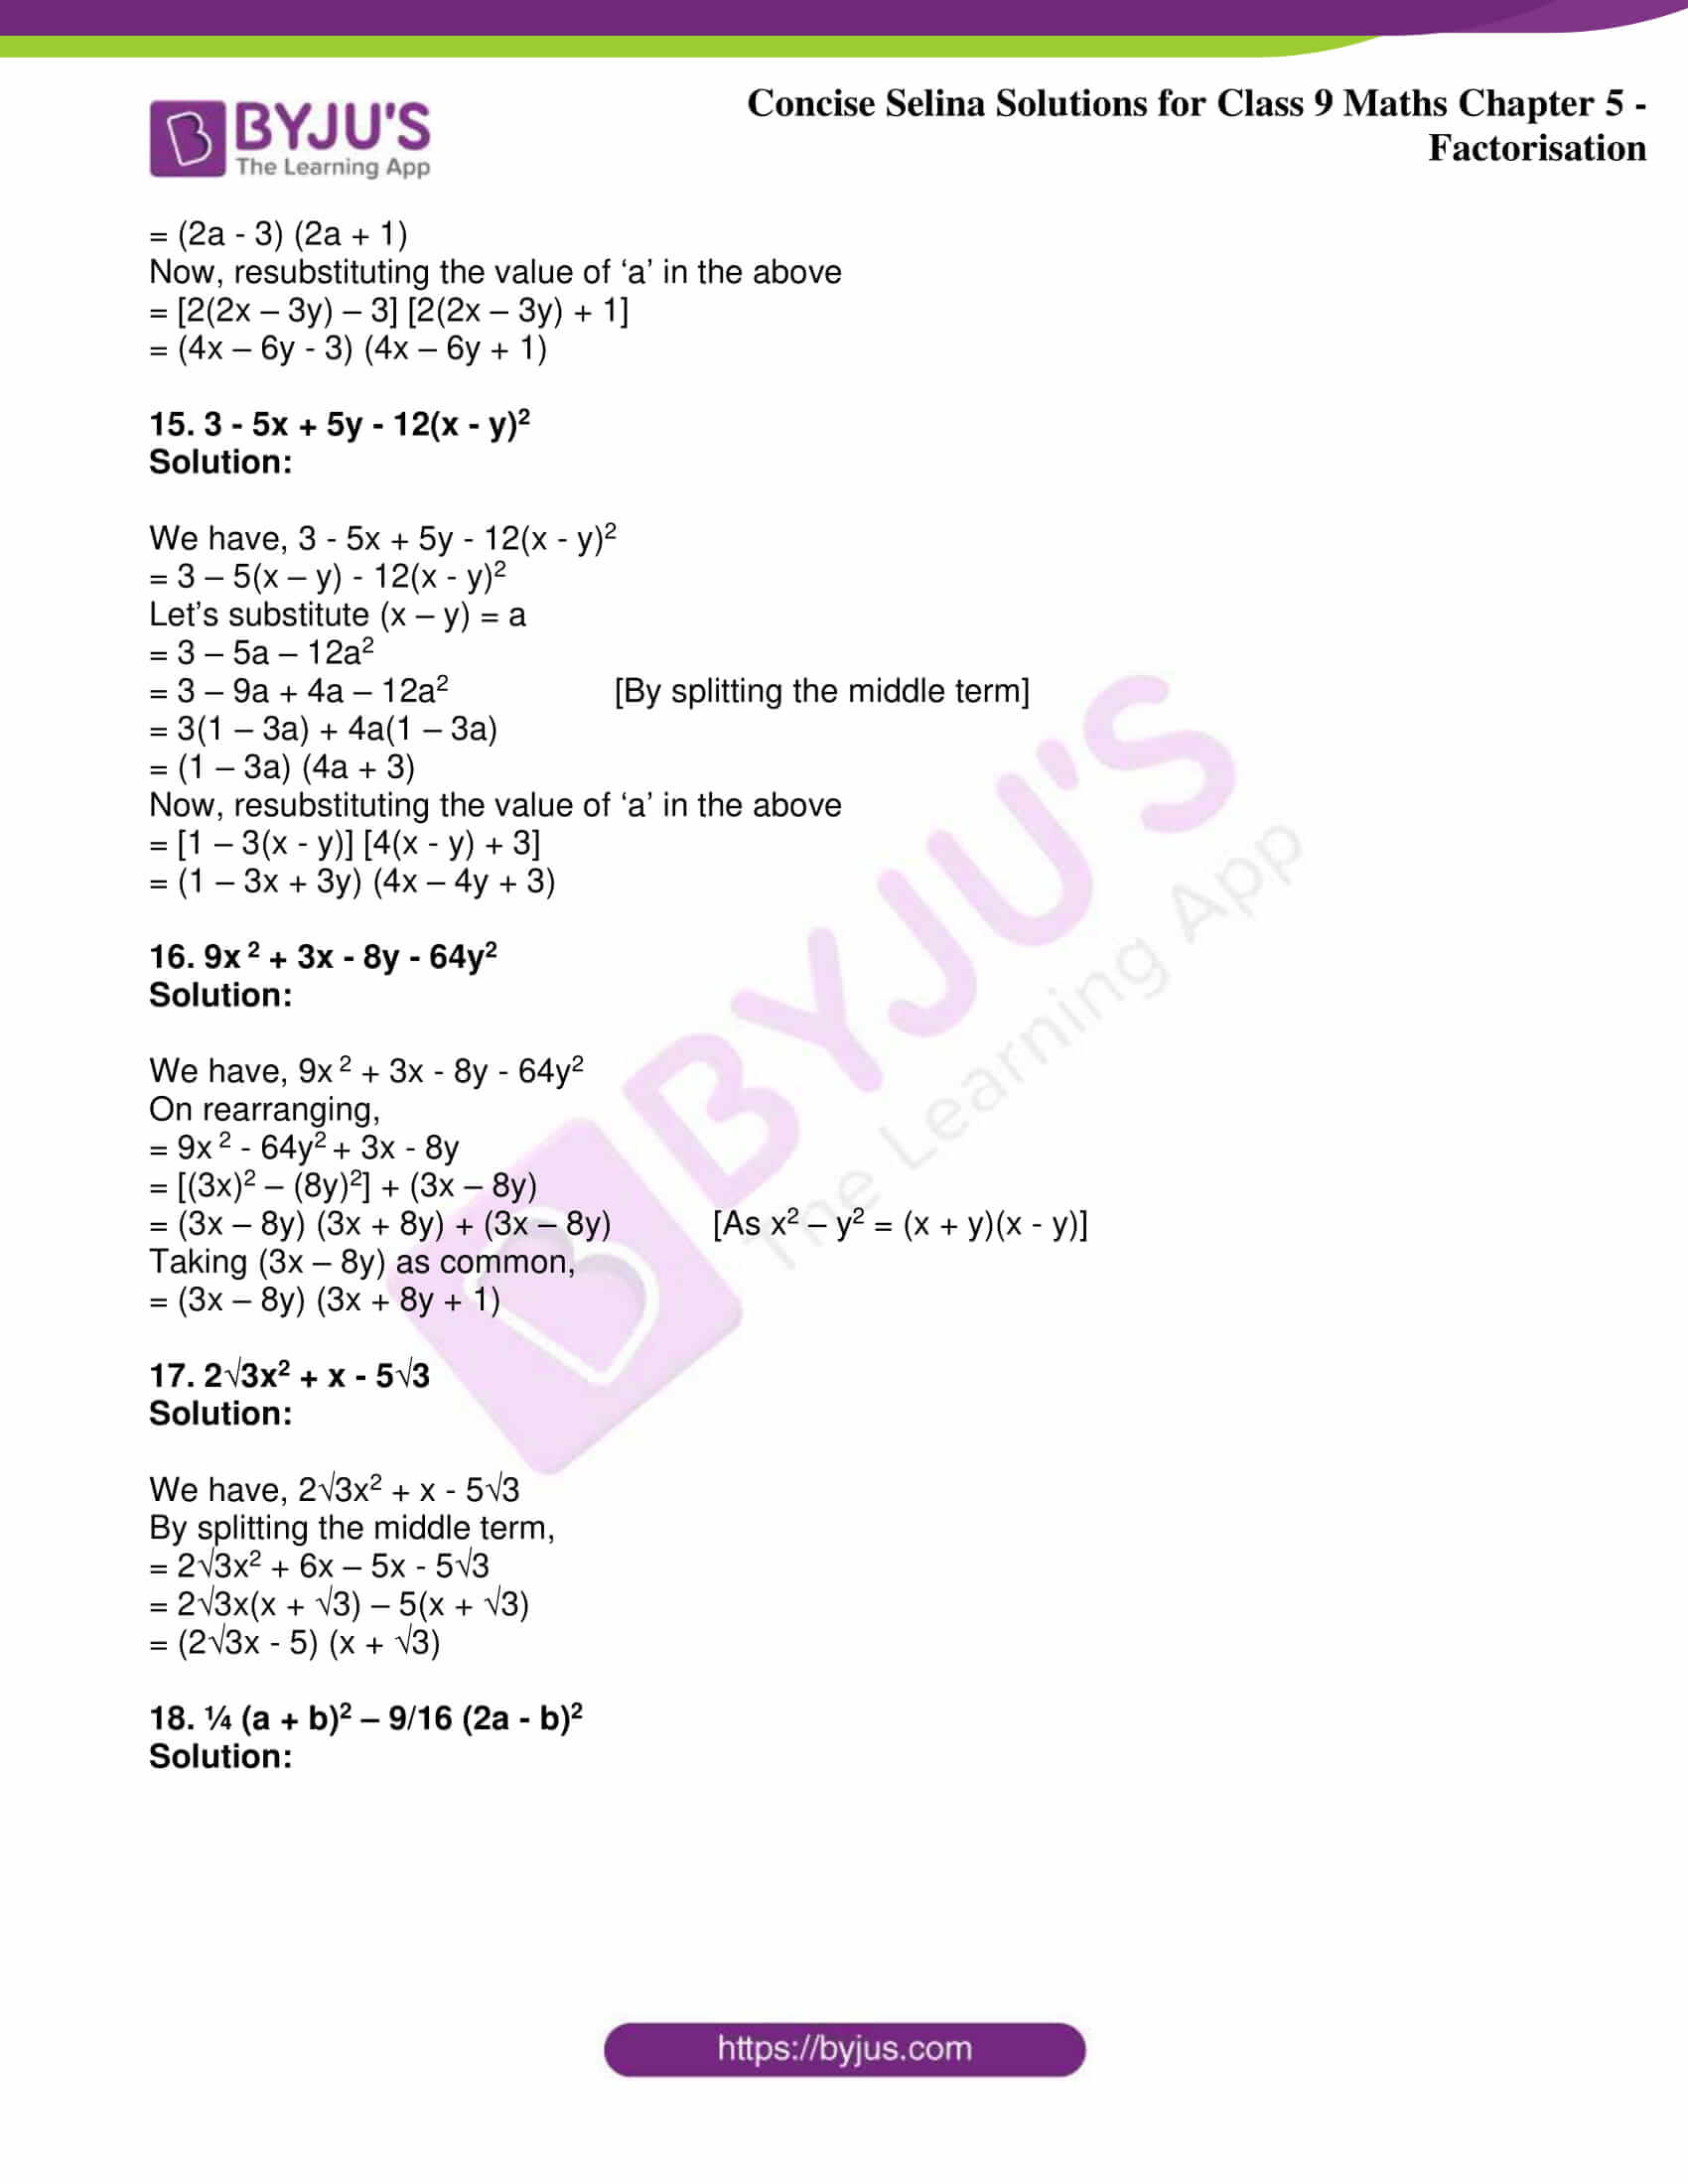 icse class 9 maths may10 selina solutions chapter 5 factorisation 29